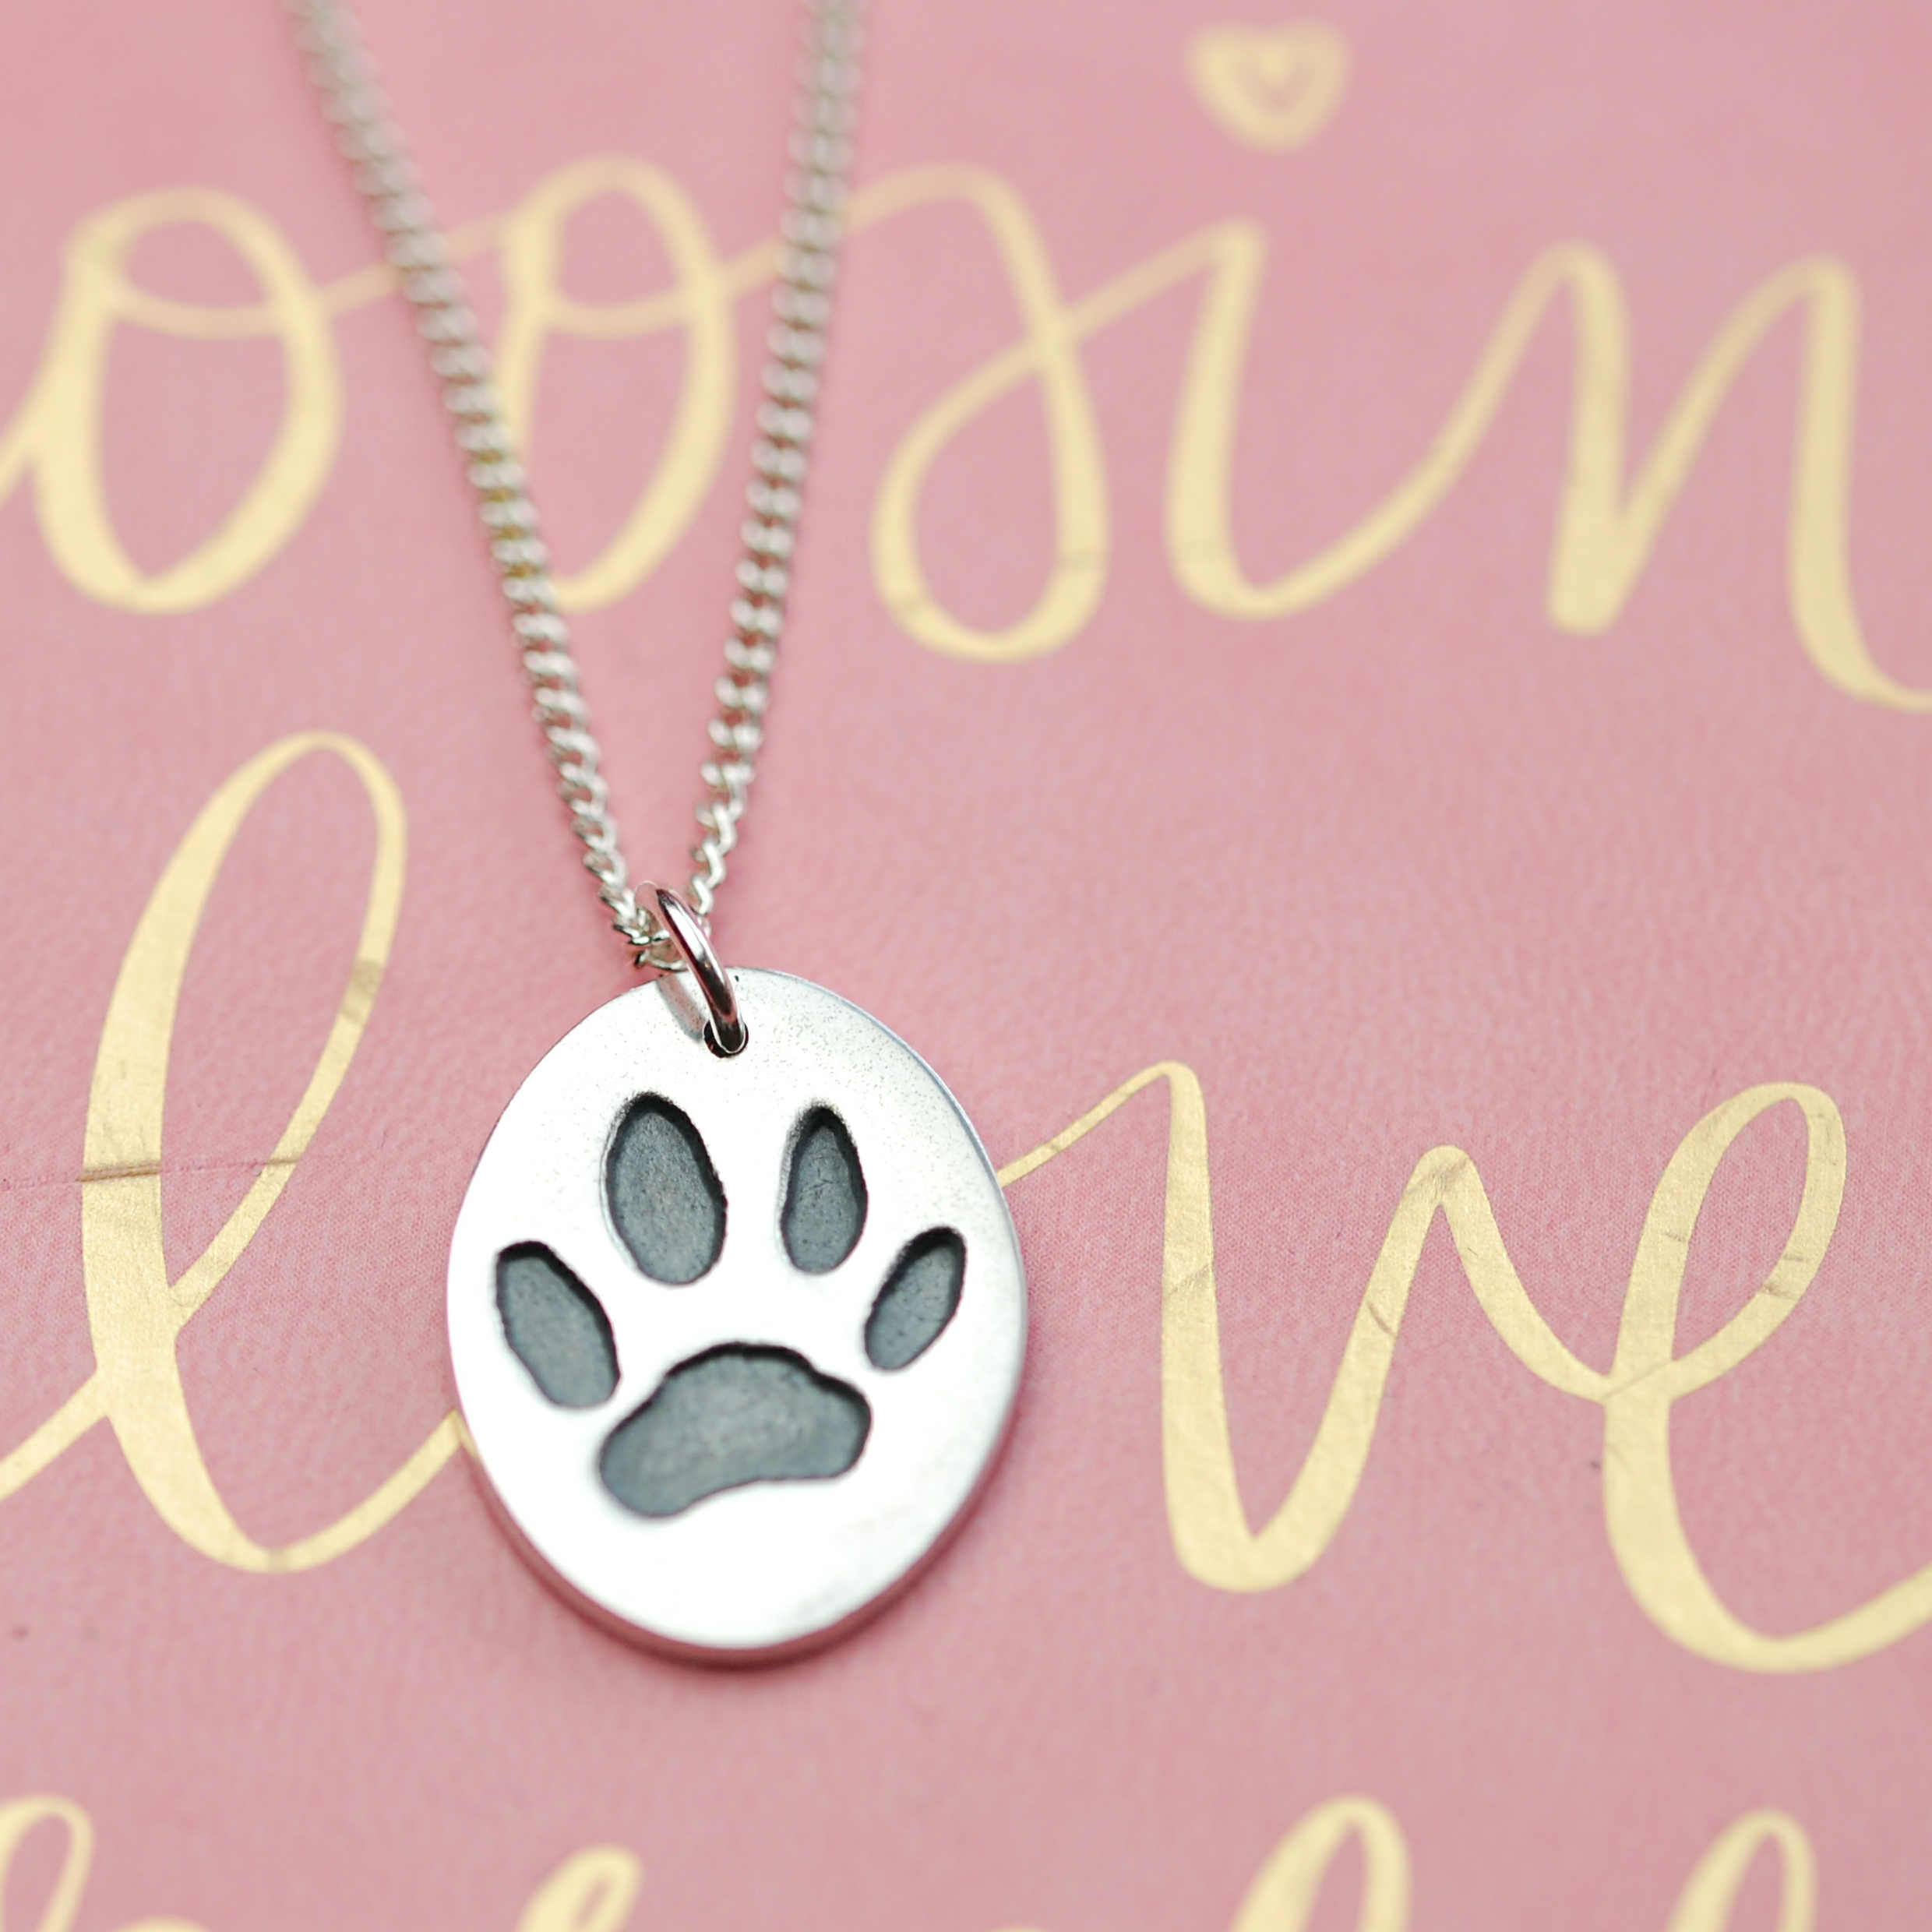 Celebrate birthdays for dogs and cats by capturing their unique paw print in silver jewellery